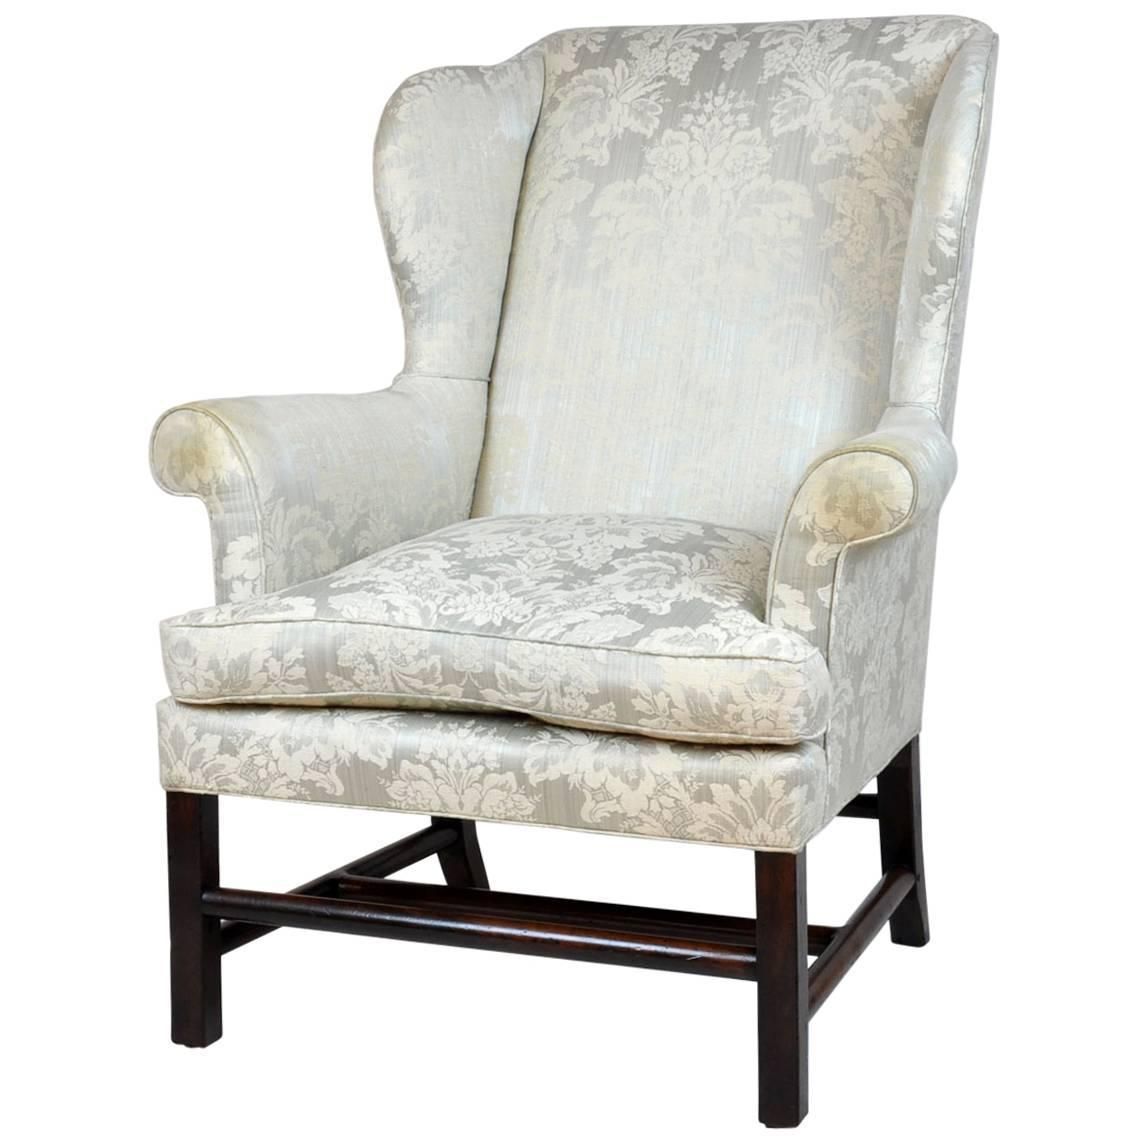 Stretcher Chair Georgian English Rolled Arm Wing Chair With Unusual Turned